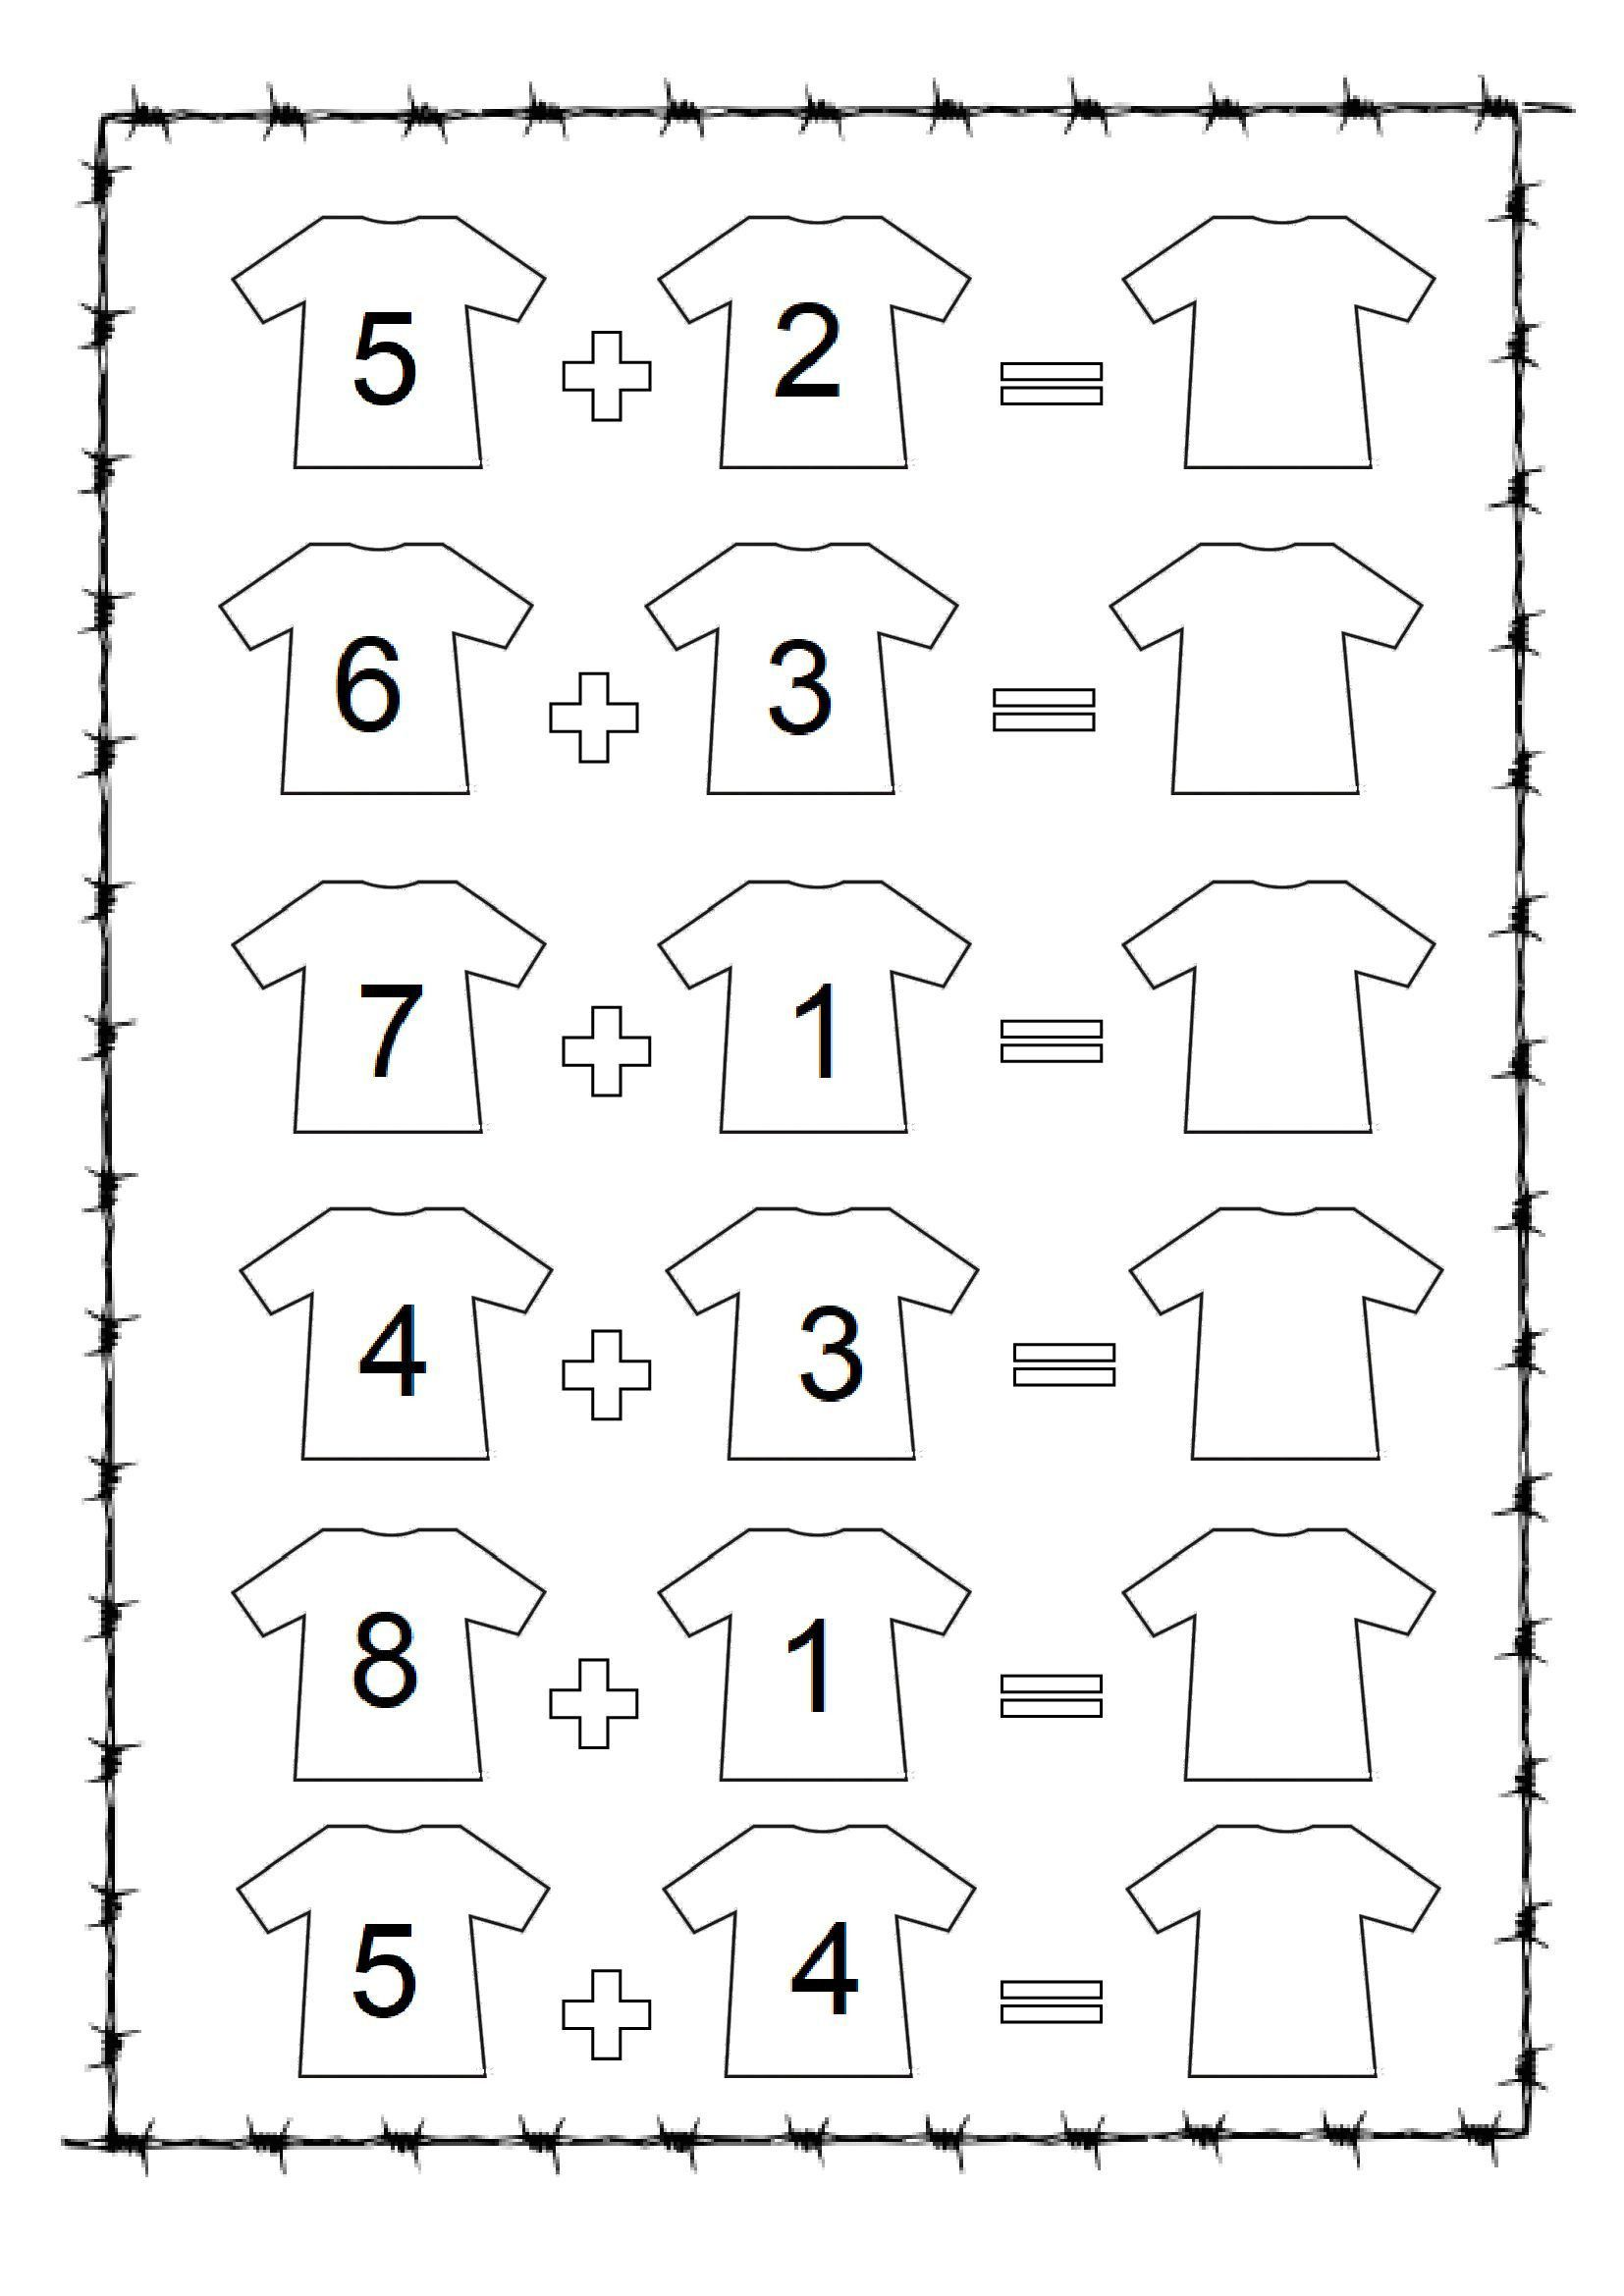 Kindergarten Math Worksheet Pdf Missing Number Worksheet Pdf Easy Kindergarten Math Worksheets Preschool Math Worksheets Kindergarten Math Worksheets Addition